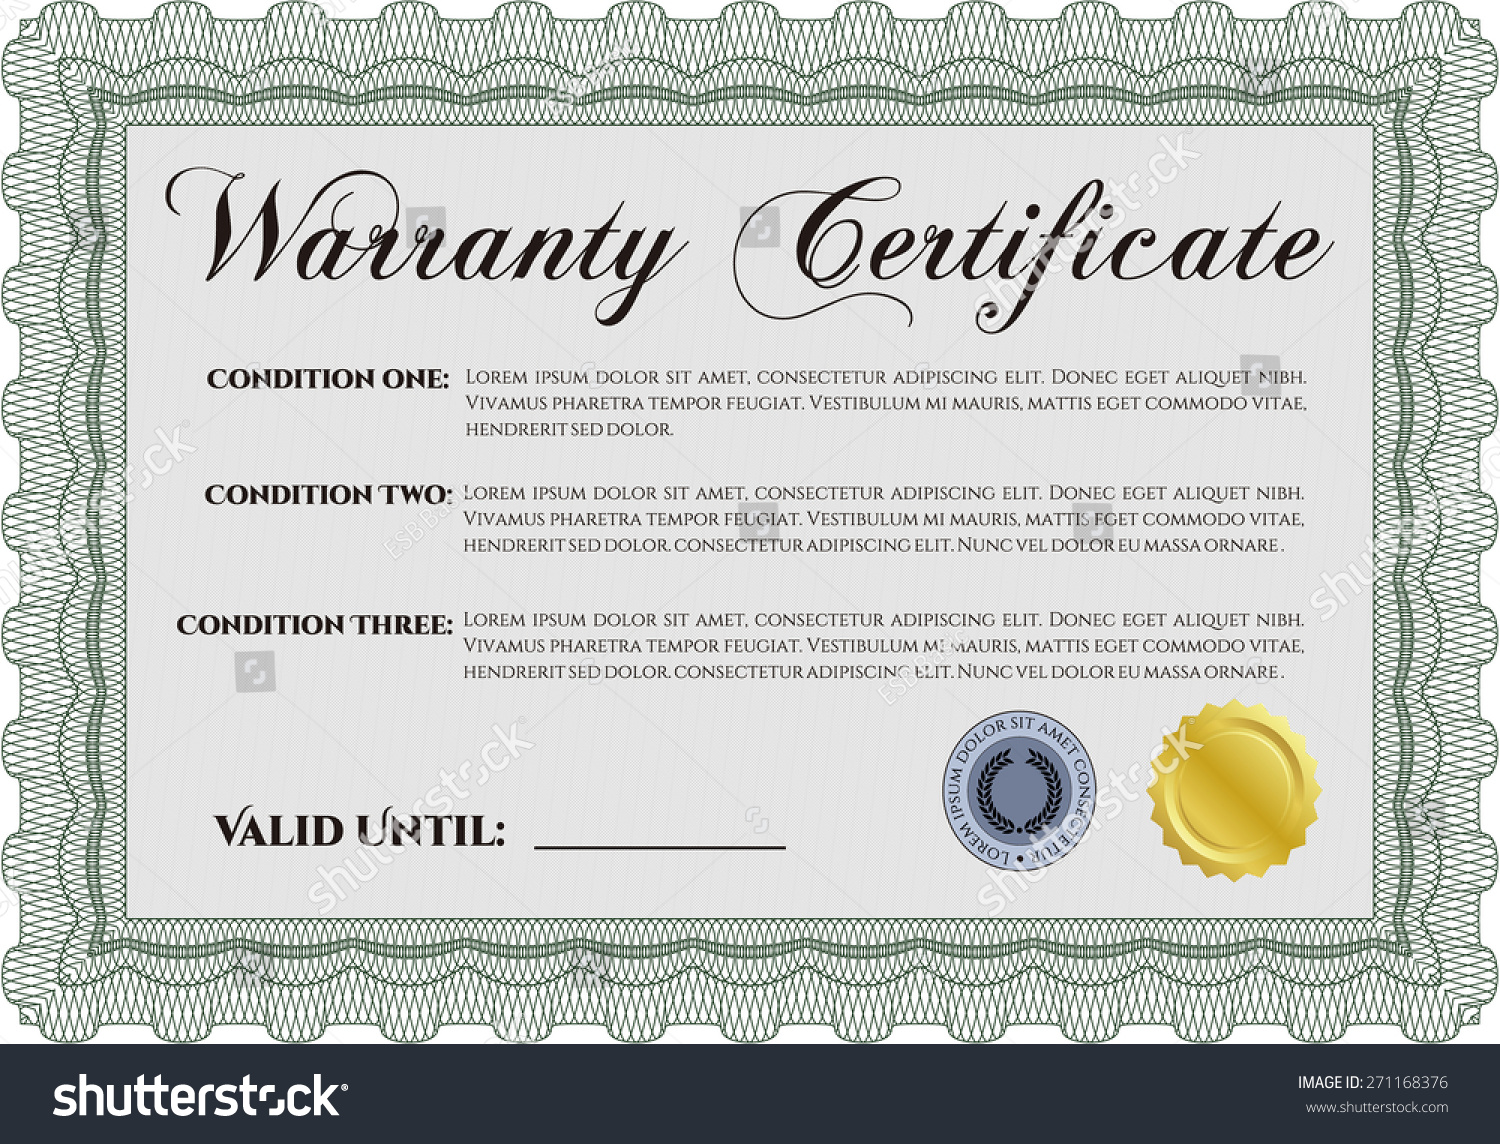 guarantee certificate template